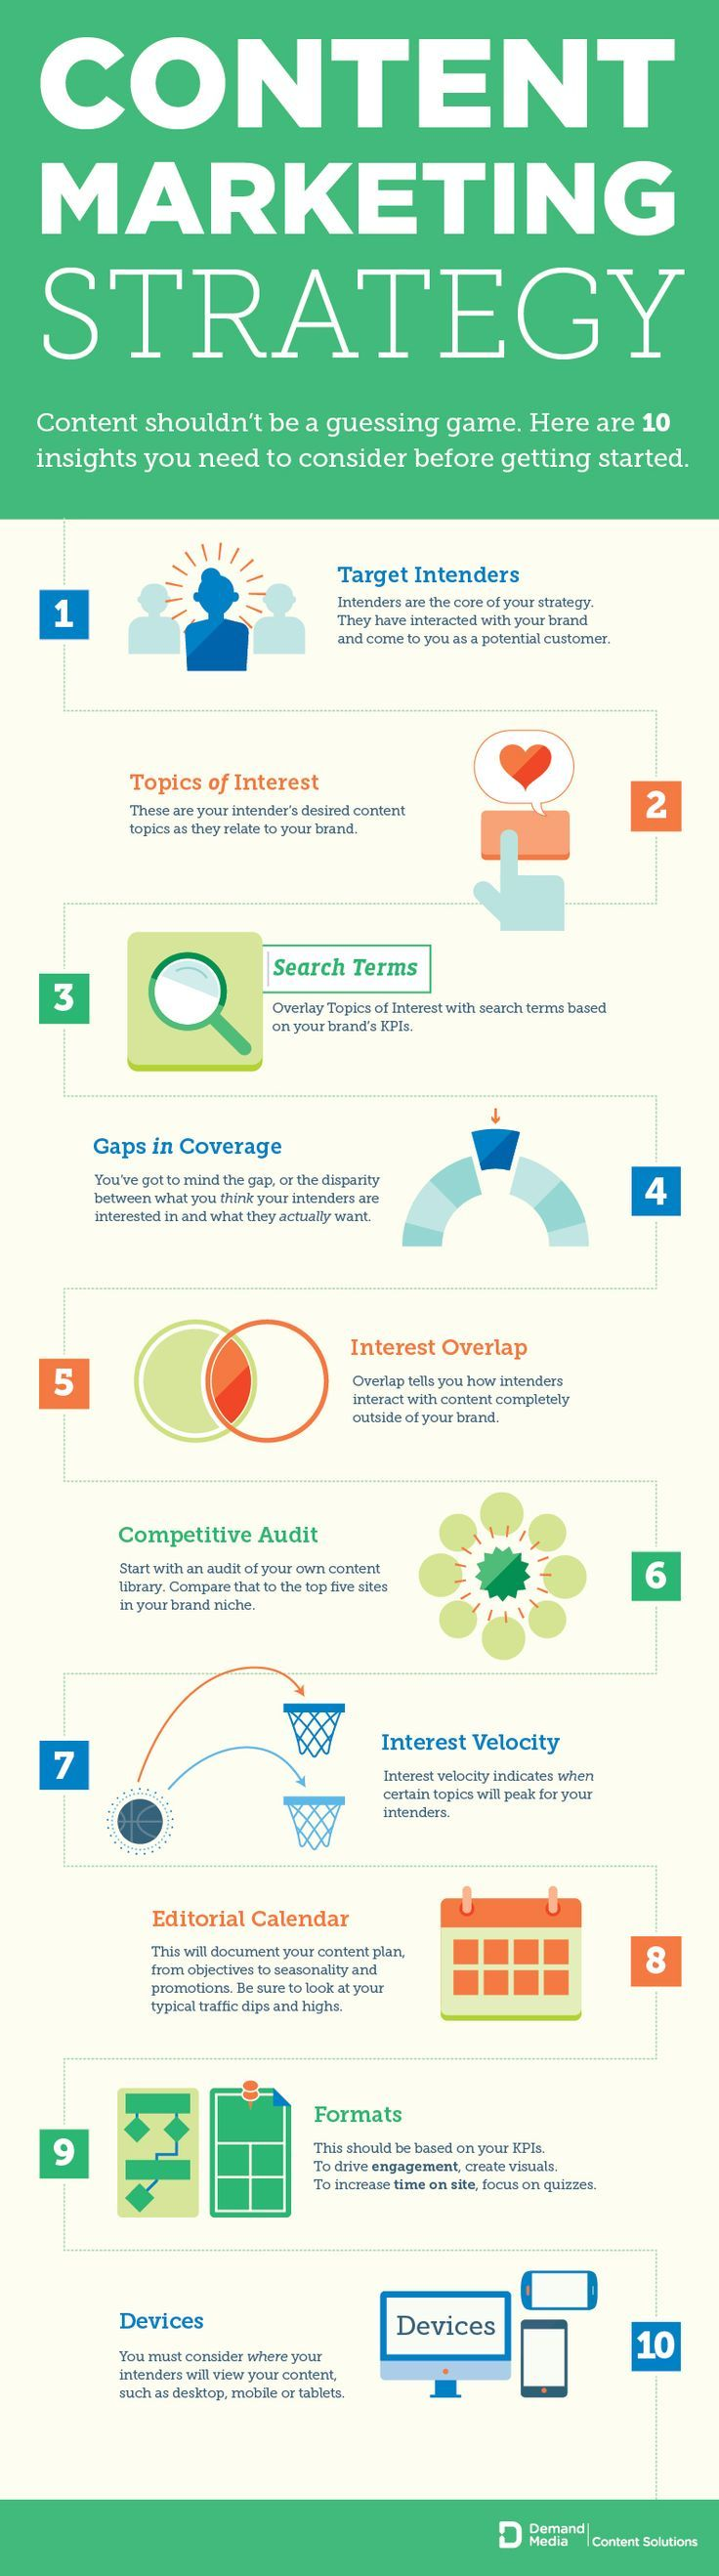 Content Marketing Strategy Infographic  Content Marketing